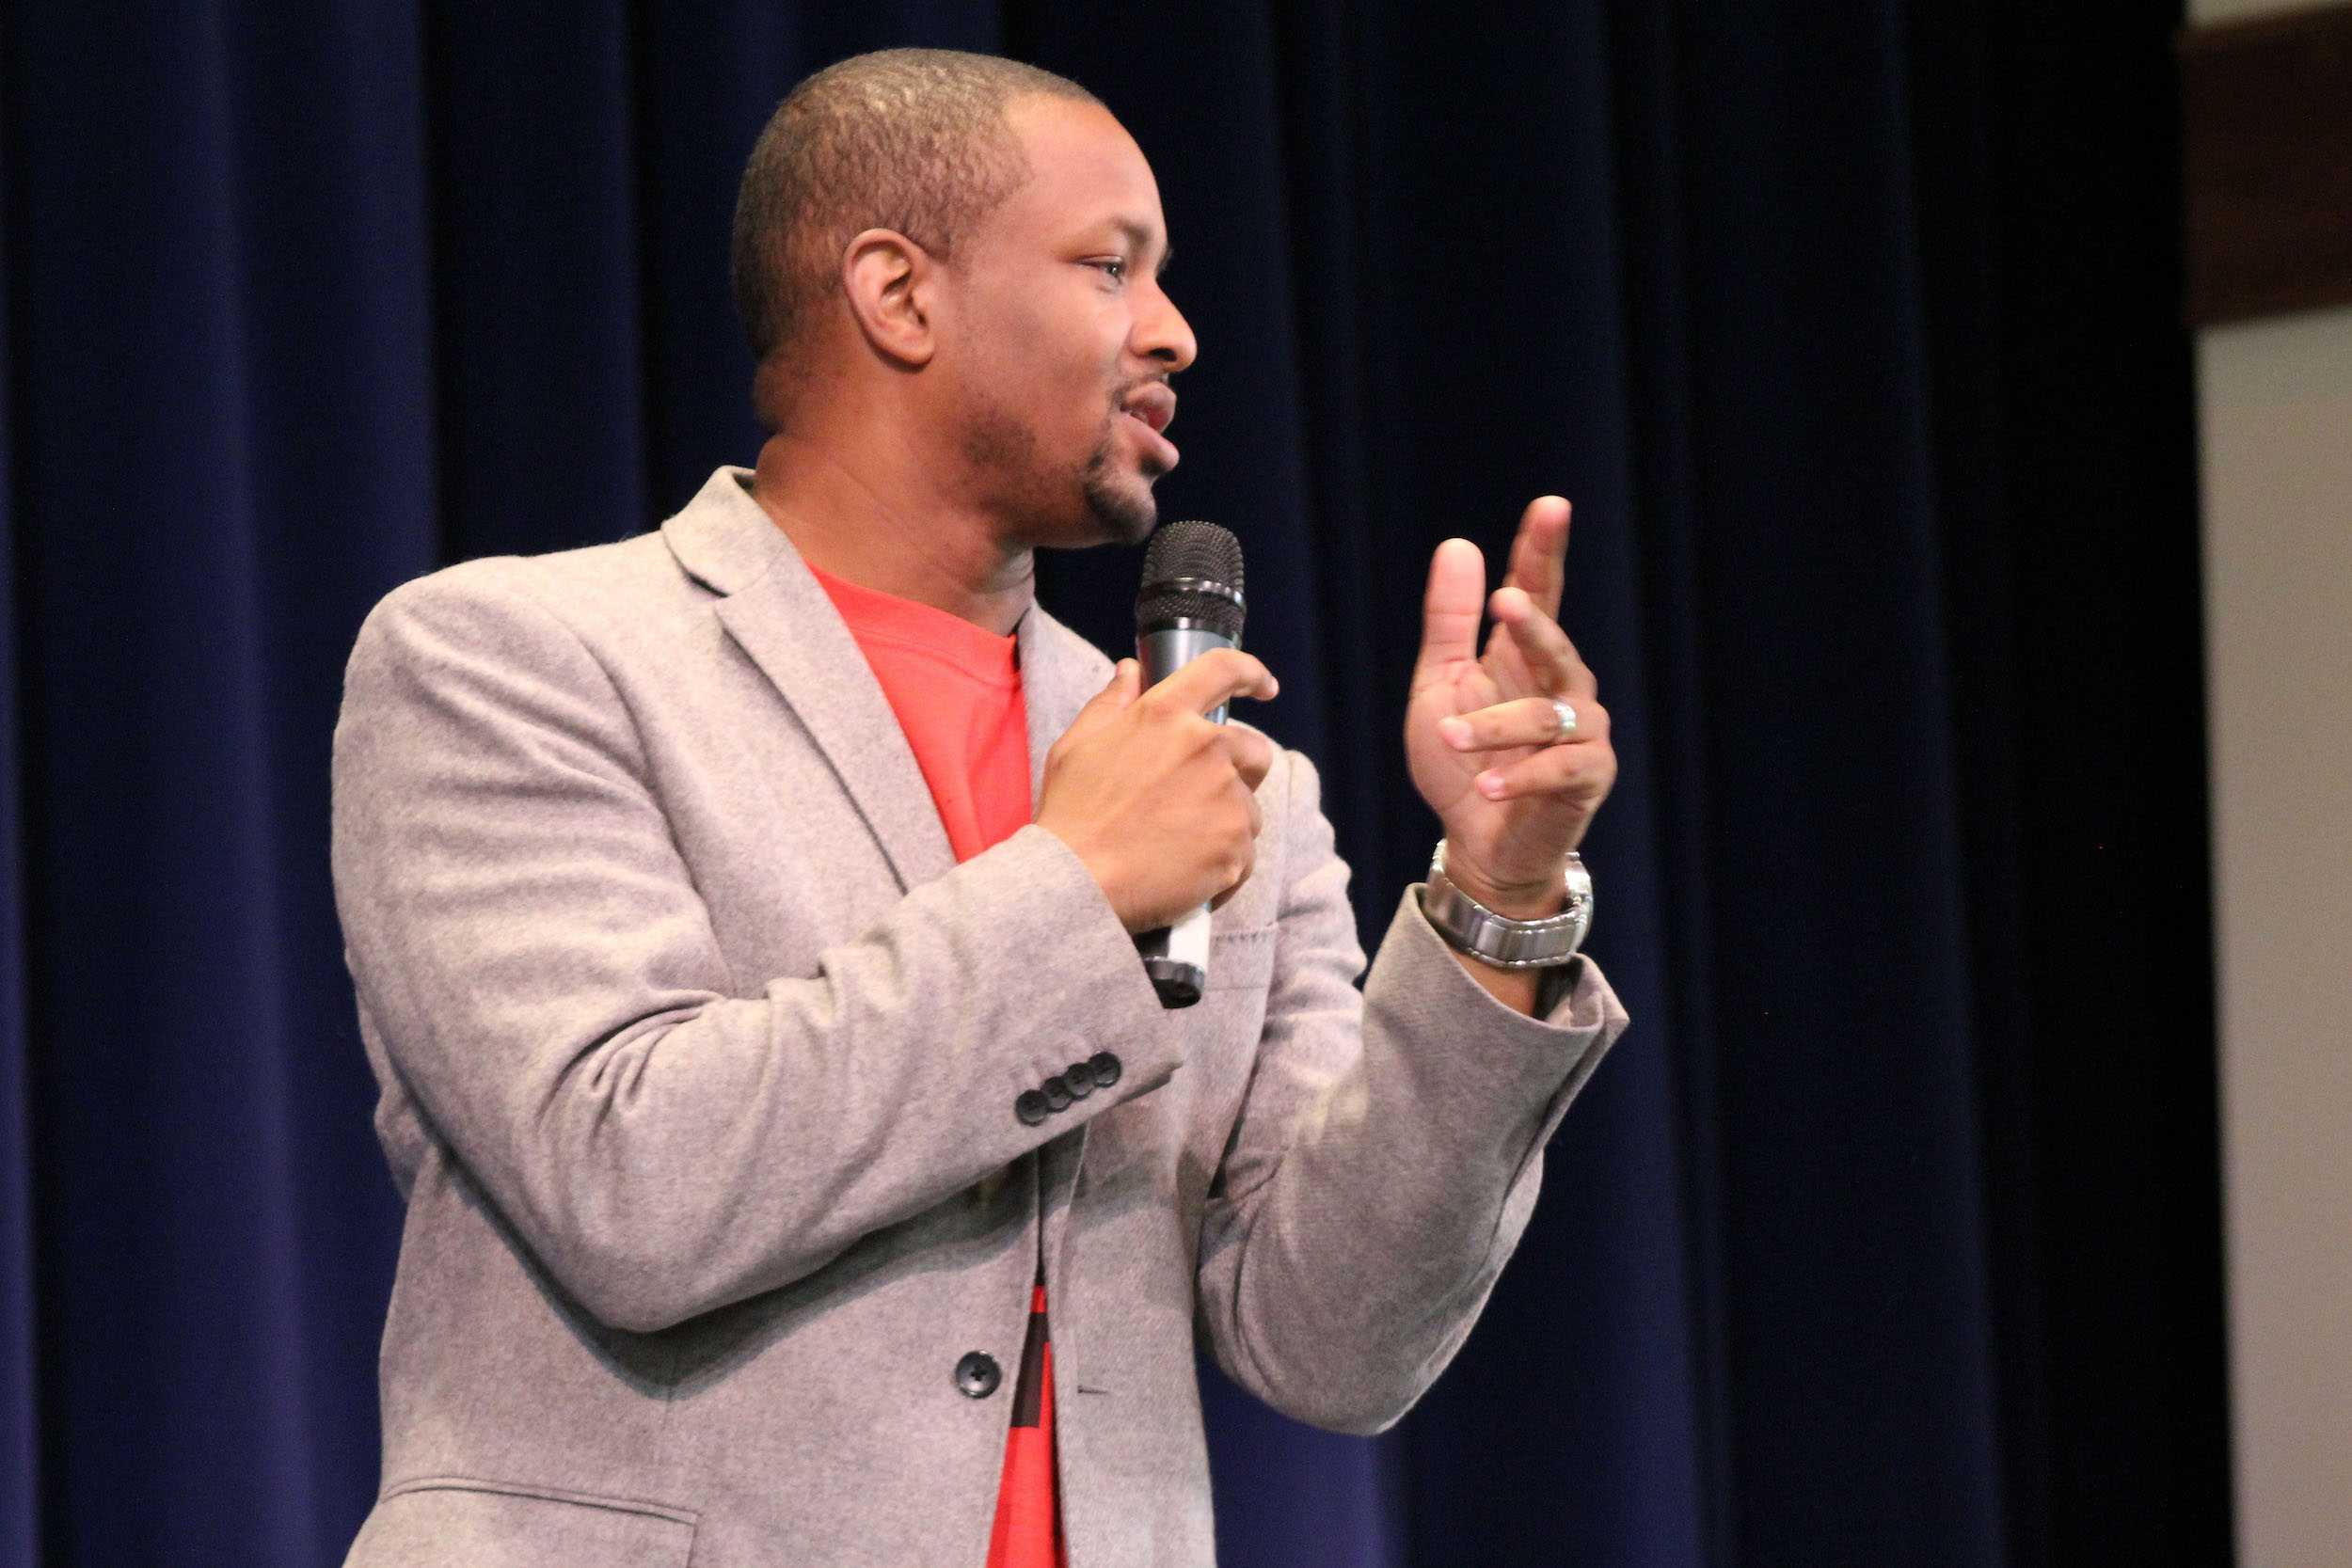 Speaker Laymon Hicks brings his motivational speech to a high school audience in Keōpūolani, Tuesday, Jan. 10. Hicks conveyed his message through his lively character and relatable personal stories.